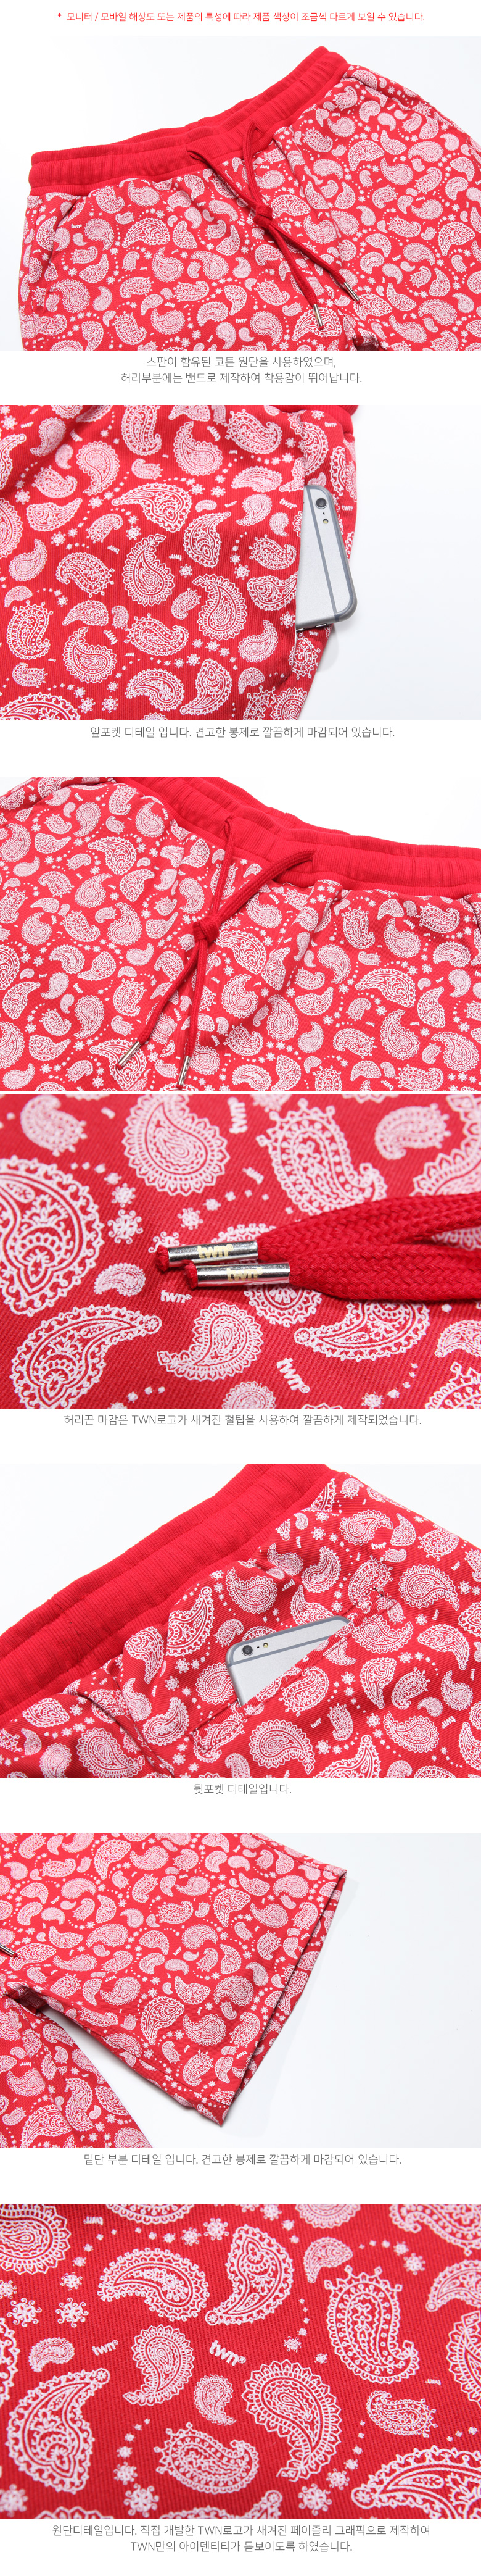 20190418_twn_paisley_detail_red_je_02.jpg